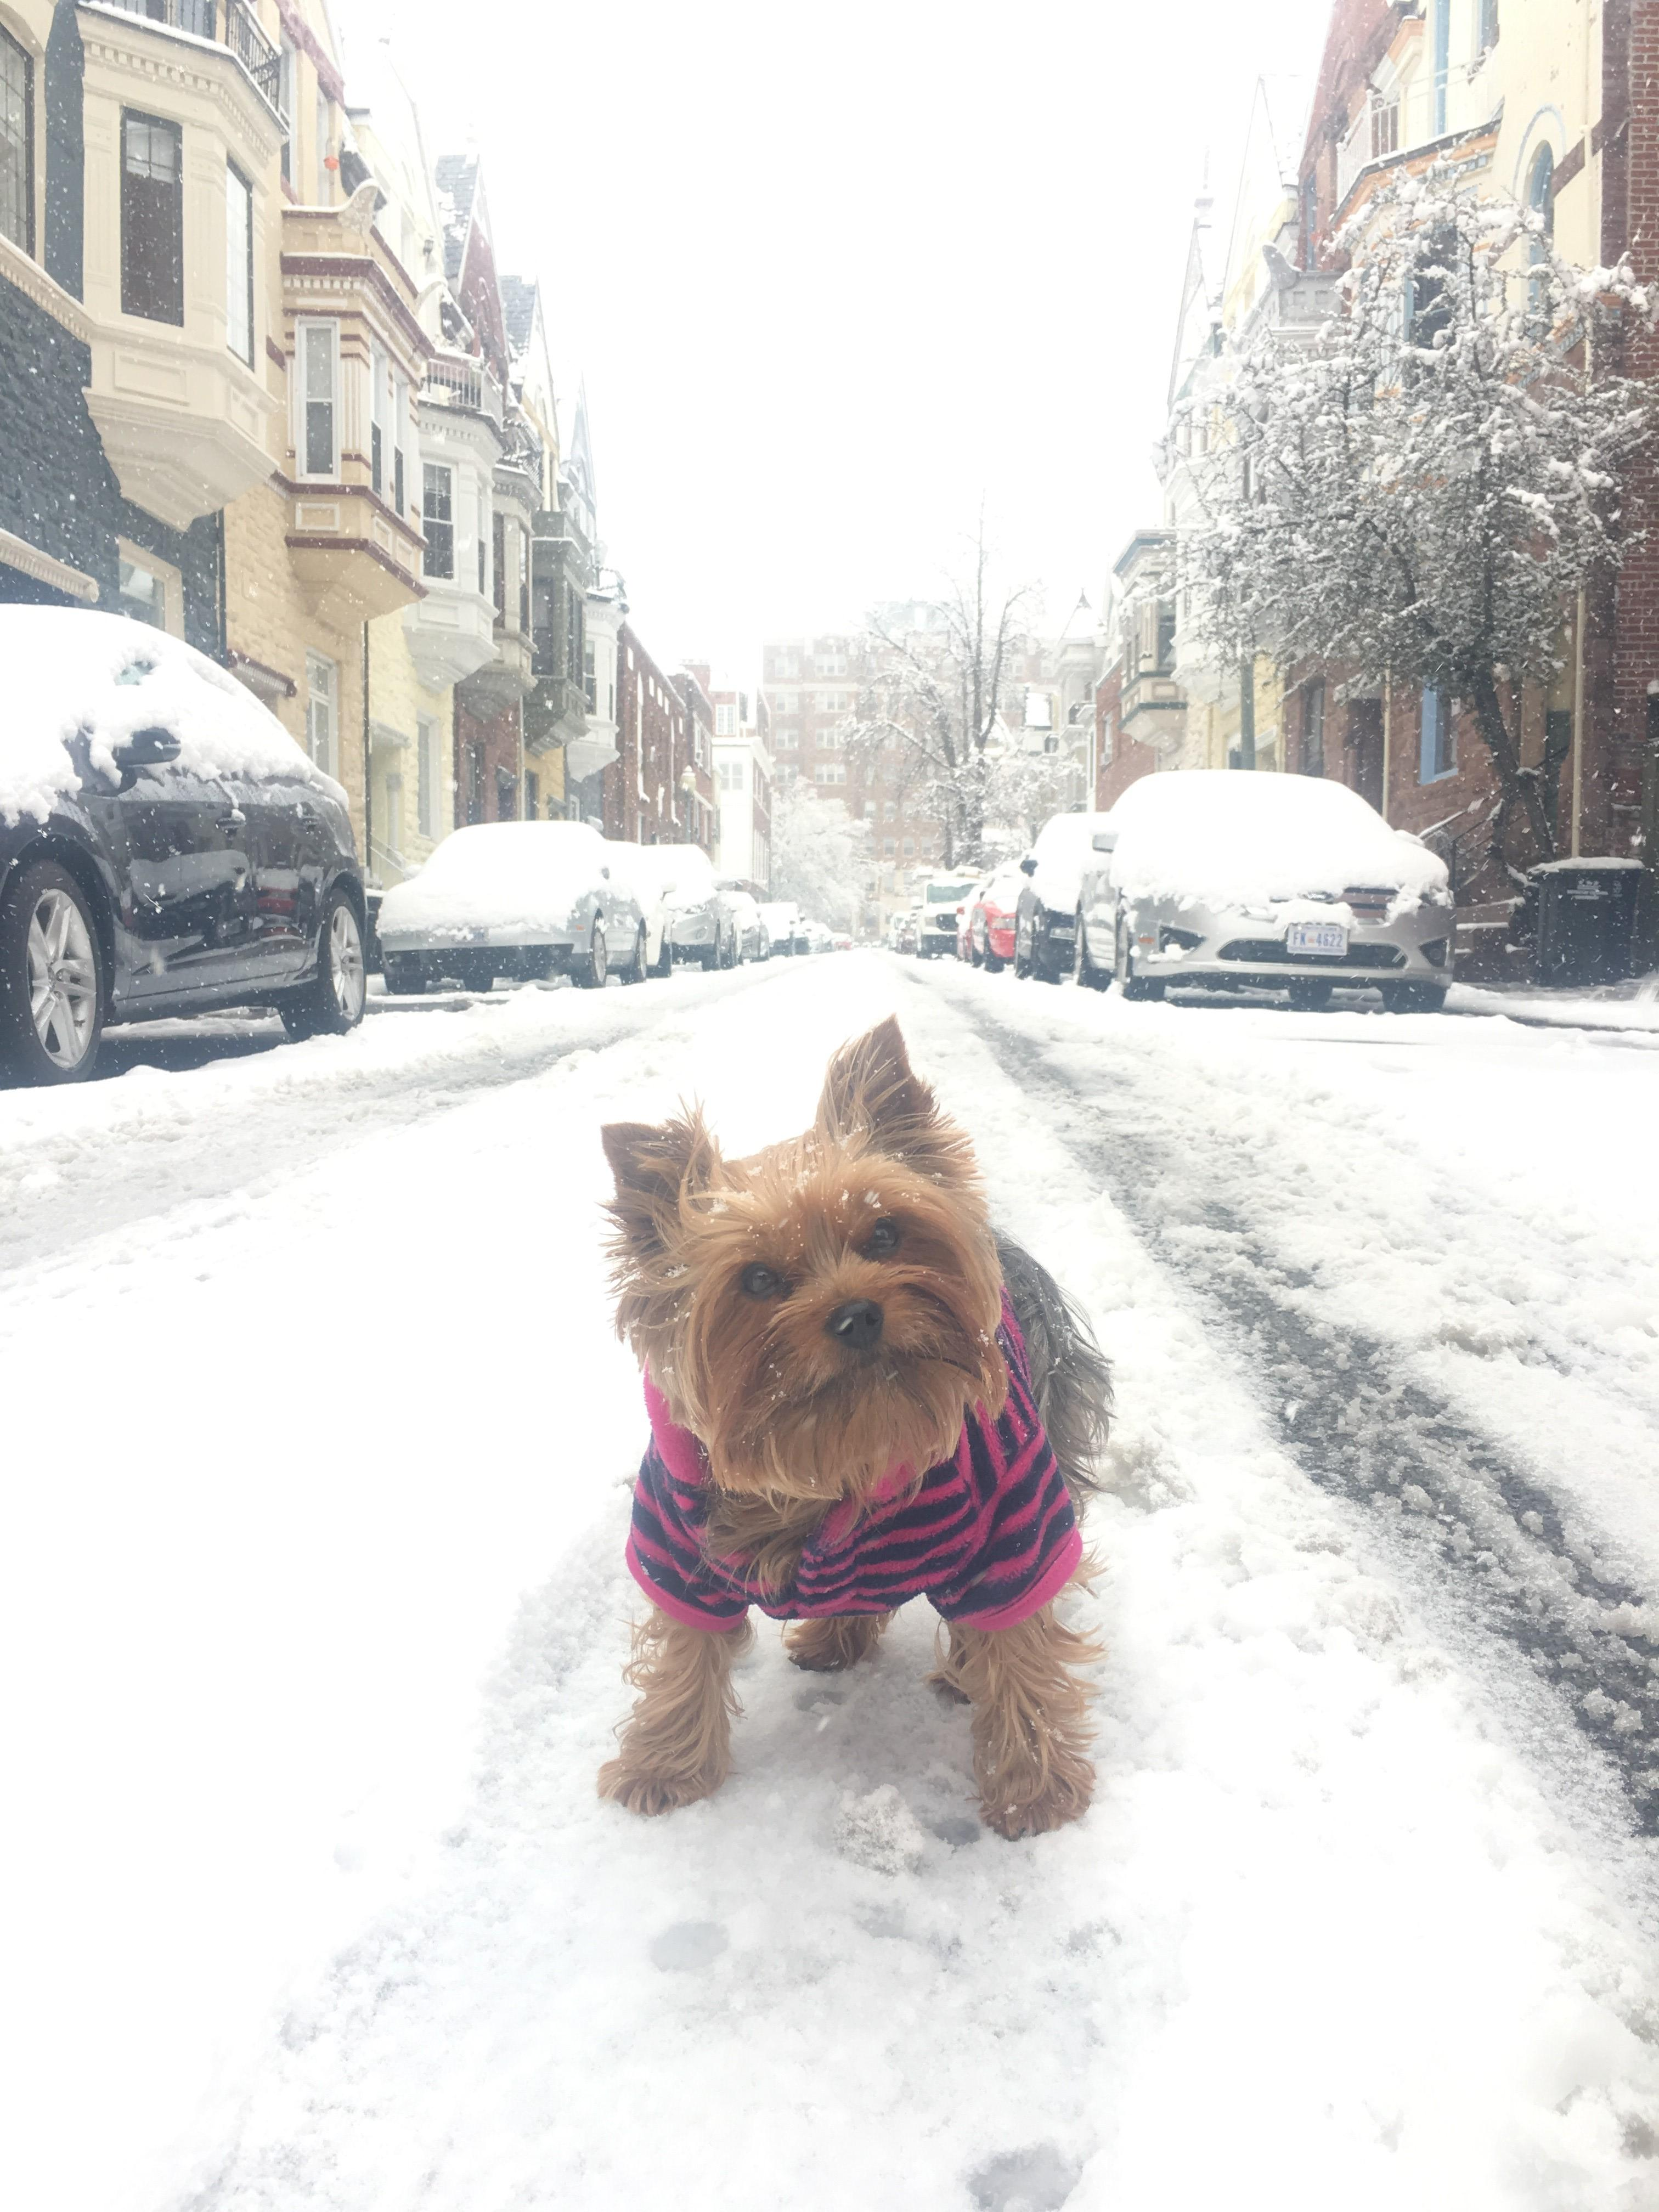 D.C. finally got its first real snowfall of the season -- on March 21! Given that it's the probably the only flakes we'll see for a while, the pups of the DMV decided to really live it up. Check out a few of the adorable pets we spotted chilling in the snow today!{ } (Image: Courtesy Caroline Byne/ IG user @yorkieheaven)